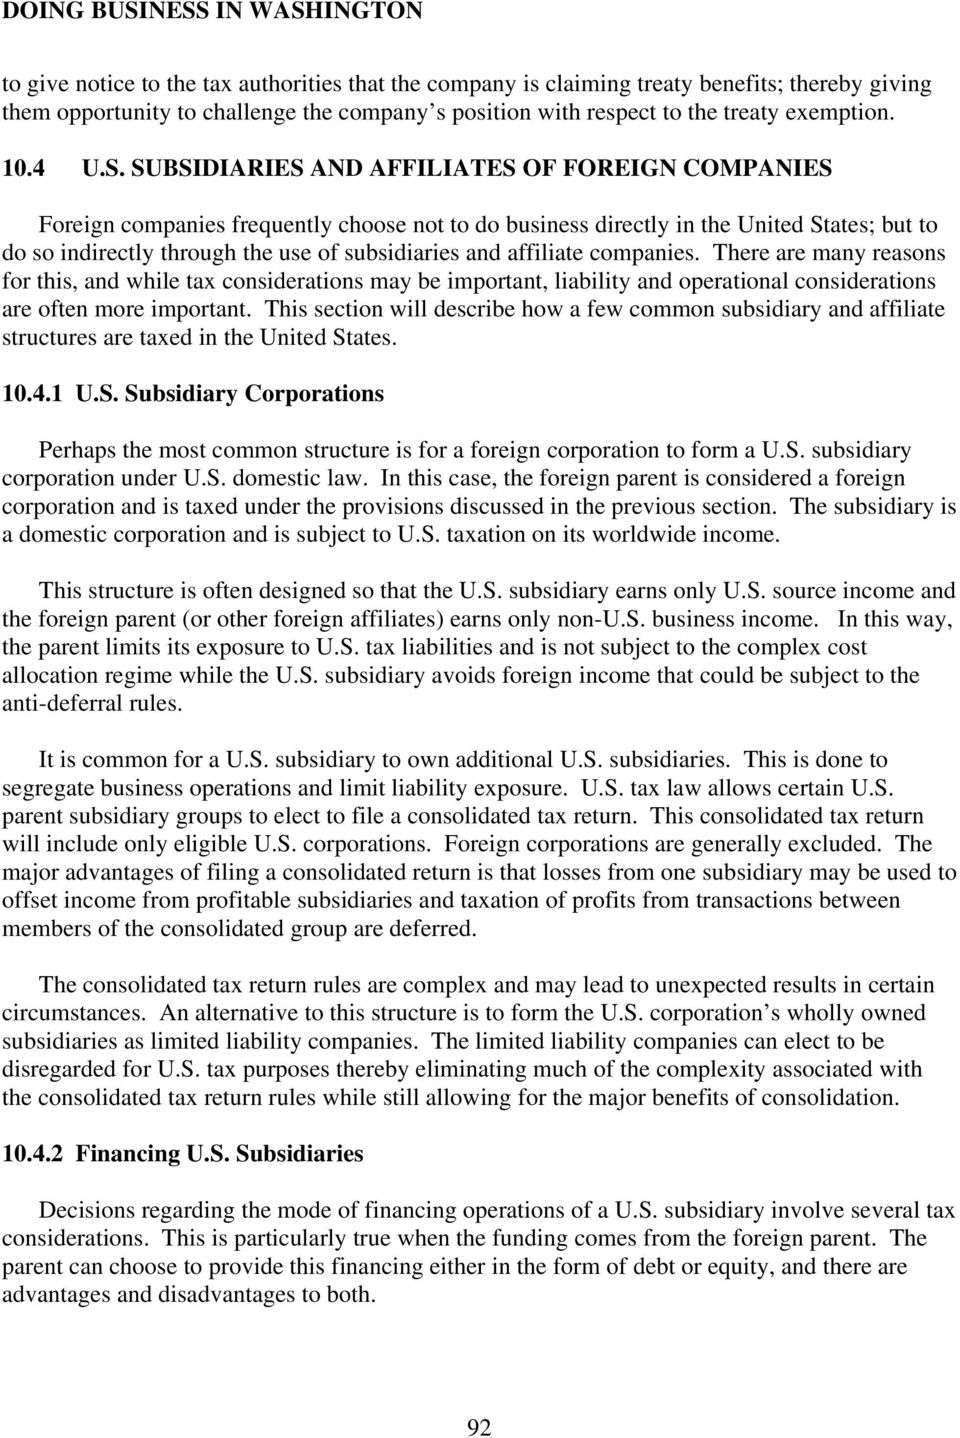 SUBSIDIARIES AND AFFILIATES OF FOREIGN COMPANIES Foreign companies frequently choose not to do business directly in the United States; but to do so indirectly through the use of subsidiaries and